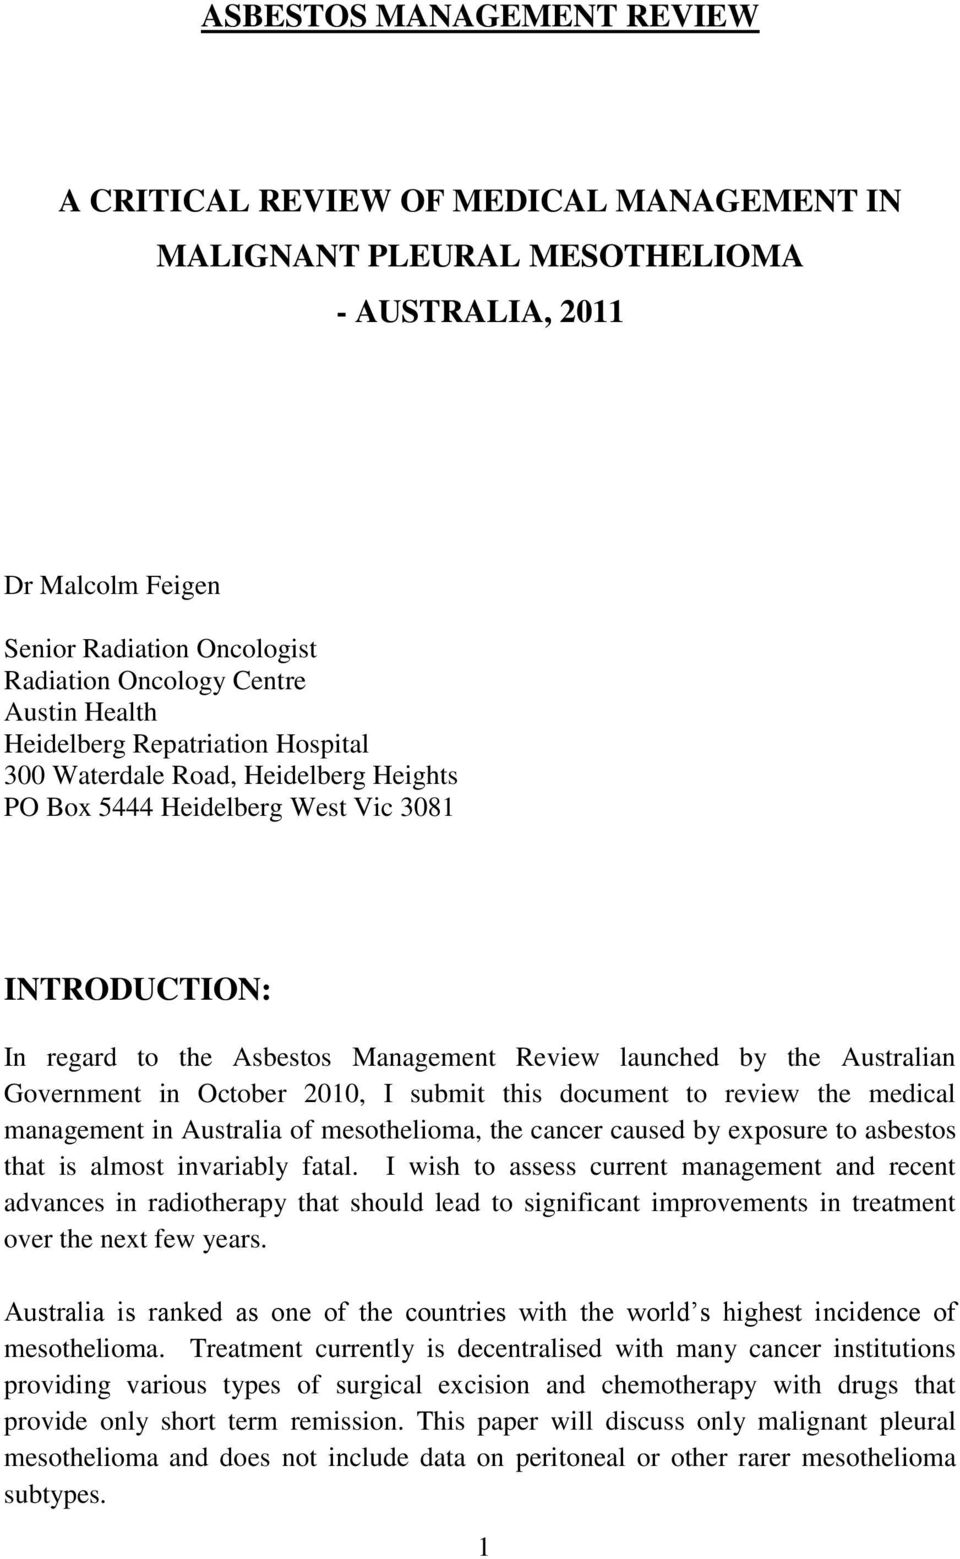 Australian Government in October 2010, I submit this document to review the medical management in Australia of mesothelioma, the cancer caused by exposure to asbestos that is almost invariably fatal.